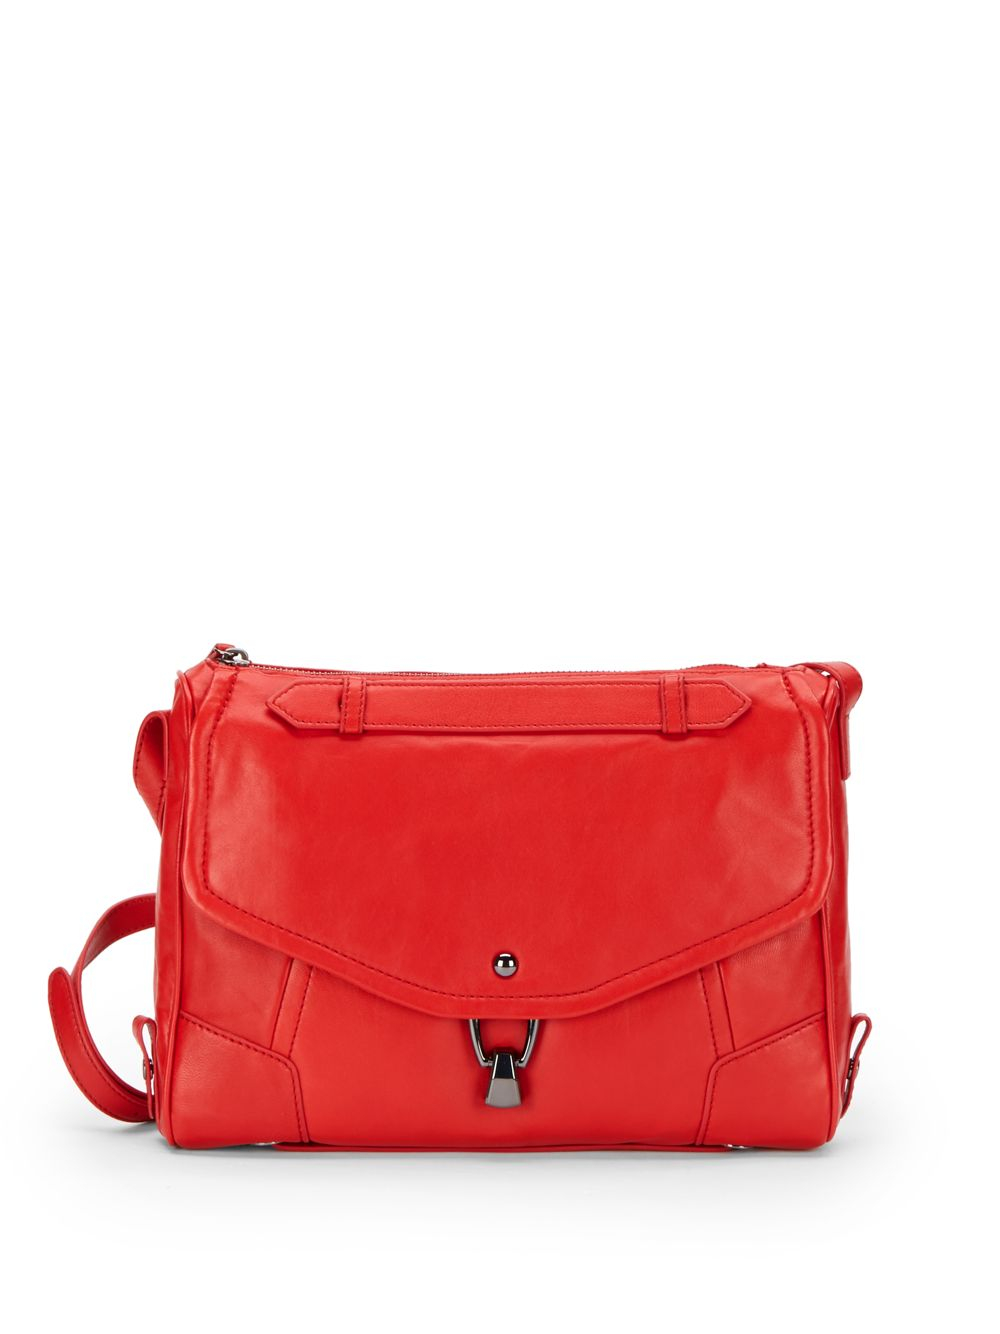 kooba leather convertible crossbody bag in lyst